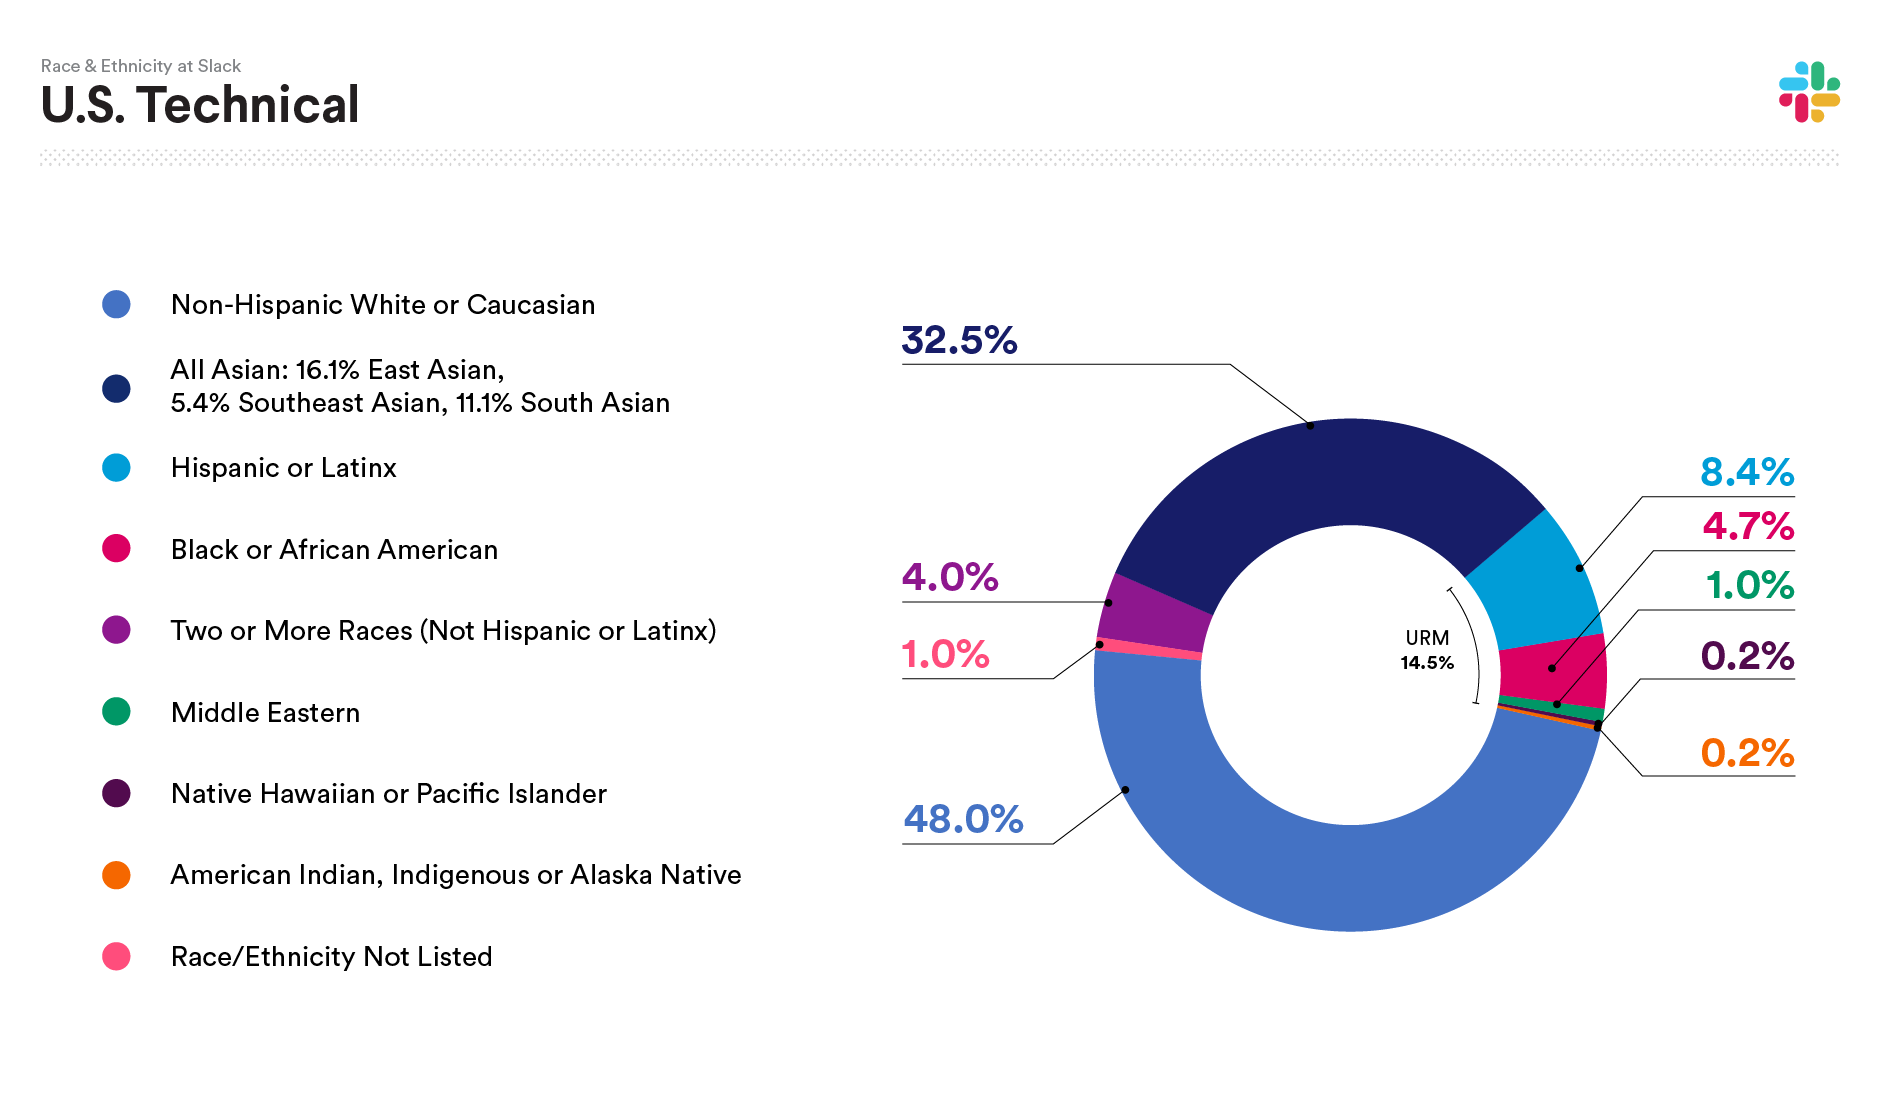 2019 Slack data on U.S. Technical Race and Ethnicity: Non-Hispanic White or Caucasian 48.01%; All Asian: 32.47%; Hispanic or Latinx 8.46%; Black or African American 4.66%; Two or more races (not Hispanic or Latinx) 3.97%; Middle Eastern 1.04%; Native Hawaiian or Pacific Islander 0.17%; American Indian, Indigenous or Alaska Native 0.17%; Race/Ethnicity not listed 1.04%